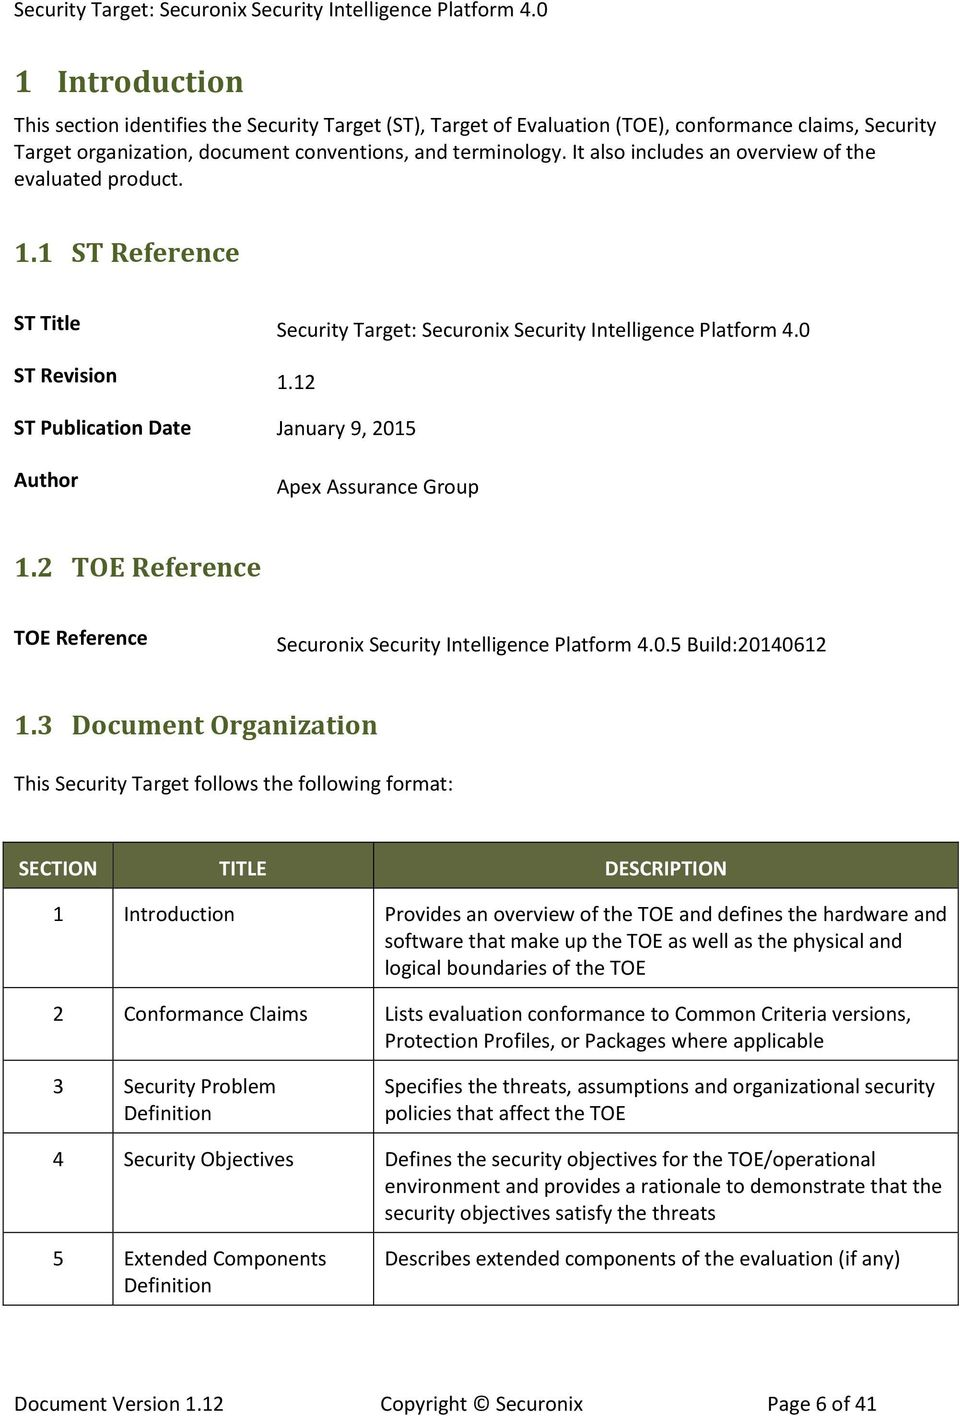 12 ST Publication Date January 9, 2015 Author Apex Assurance Group 1.2 TOE Reference TOE Reference Securonix Security Intelligence Platform 4.0.5 Build:20140612 1.